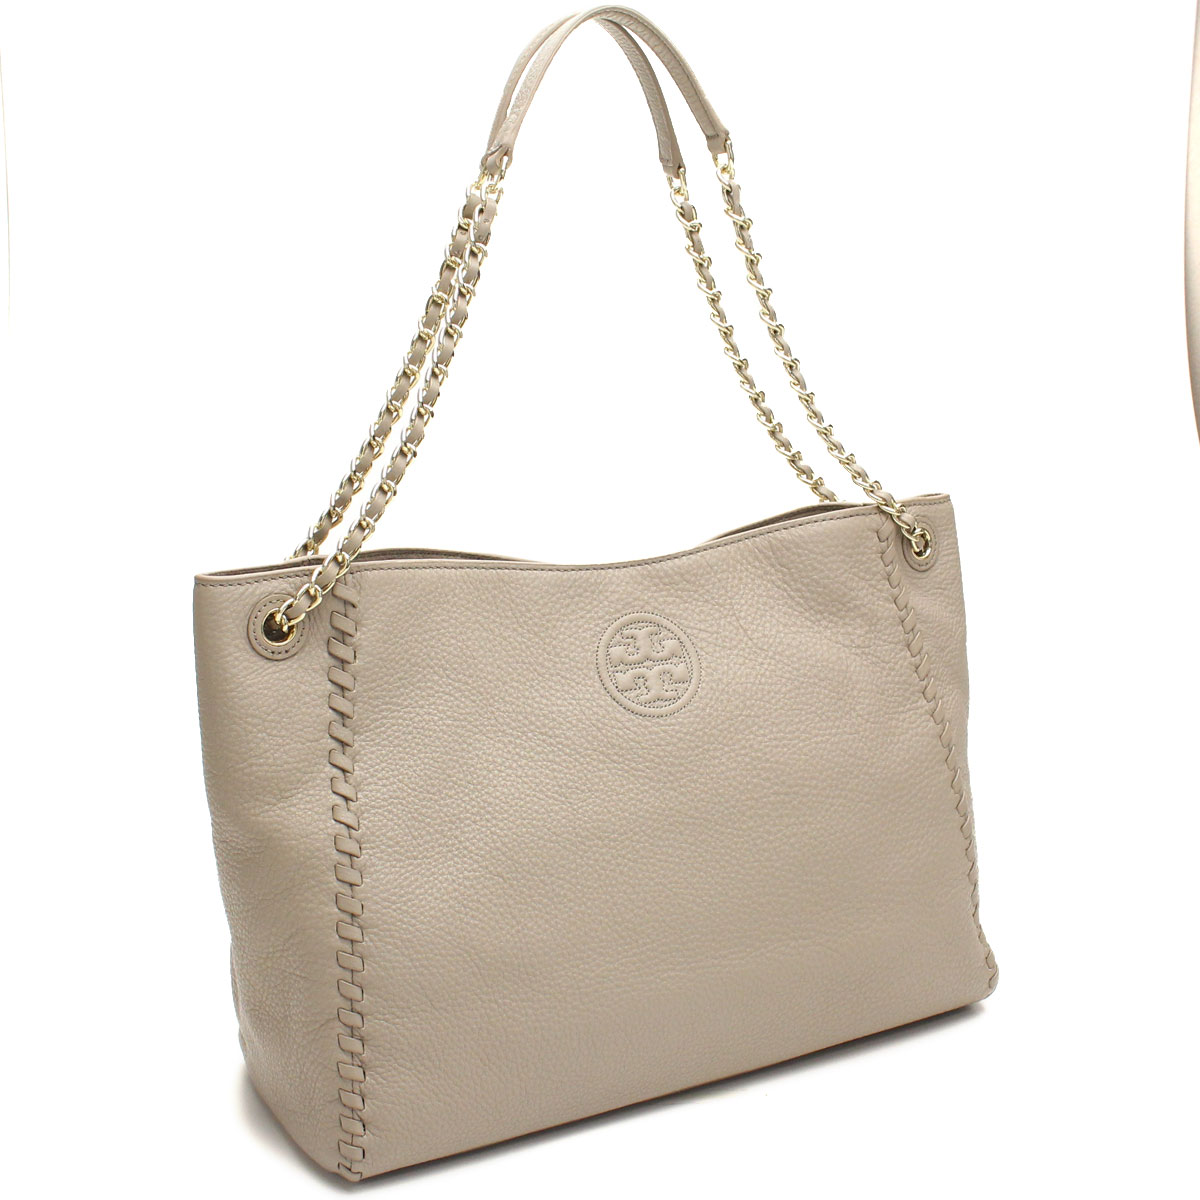 77e0d88bb Bighit The total brand wholesale: Tory Burch (TORY BURCH) tote bag  51159774-040 FRENCH GRAY gray( taxfree/send by EMS/authentic/A brand new  item ) | Rakuten ...